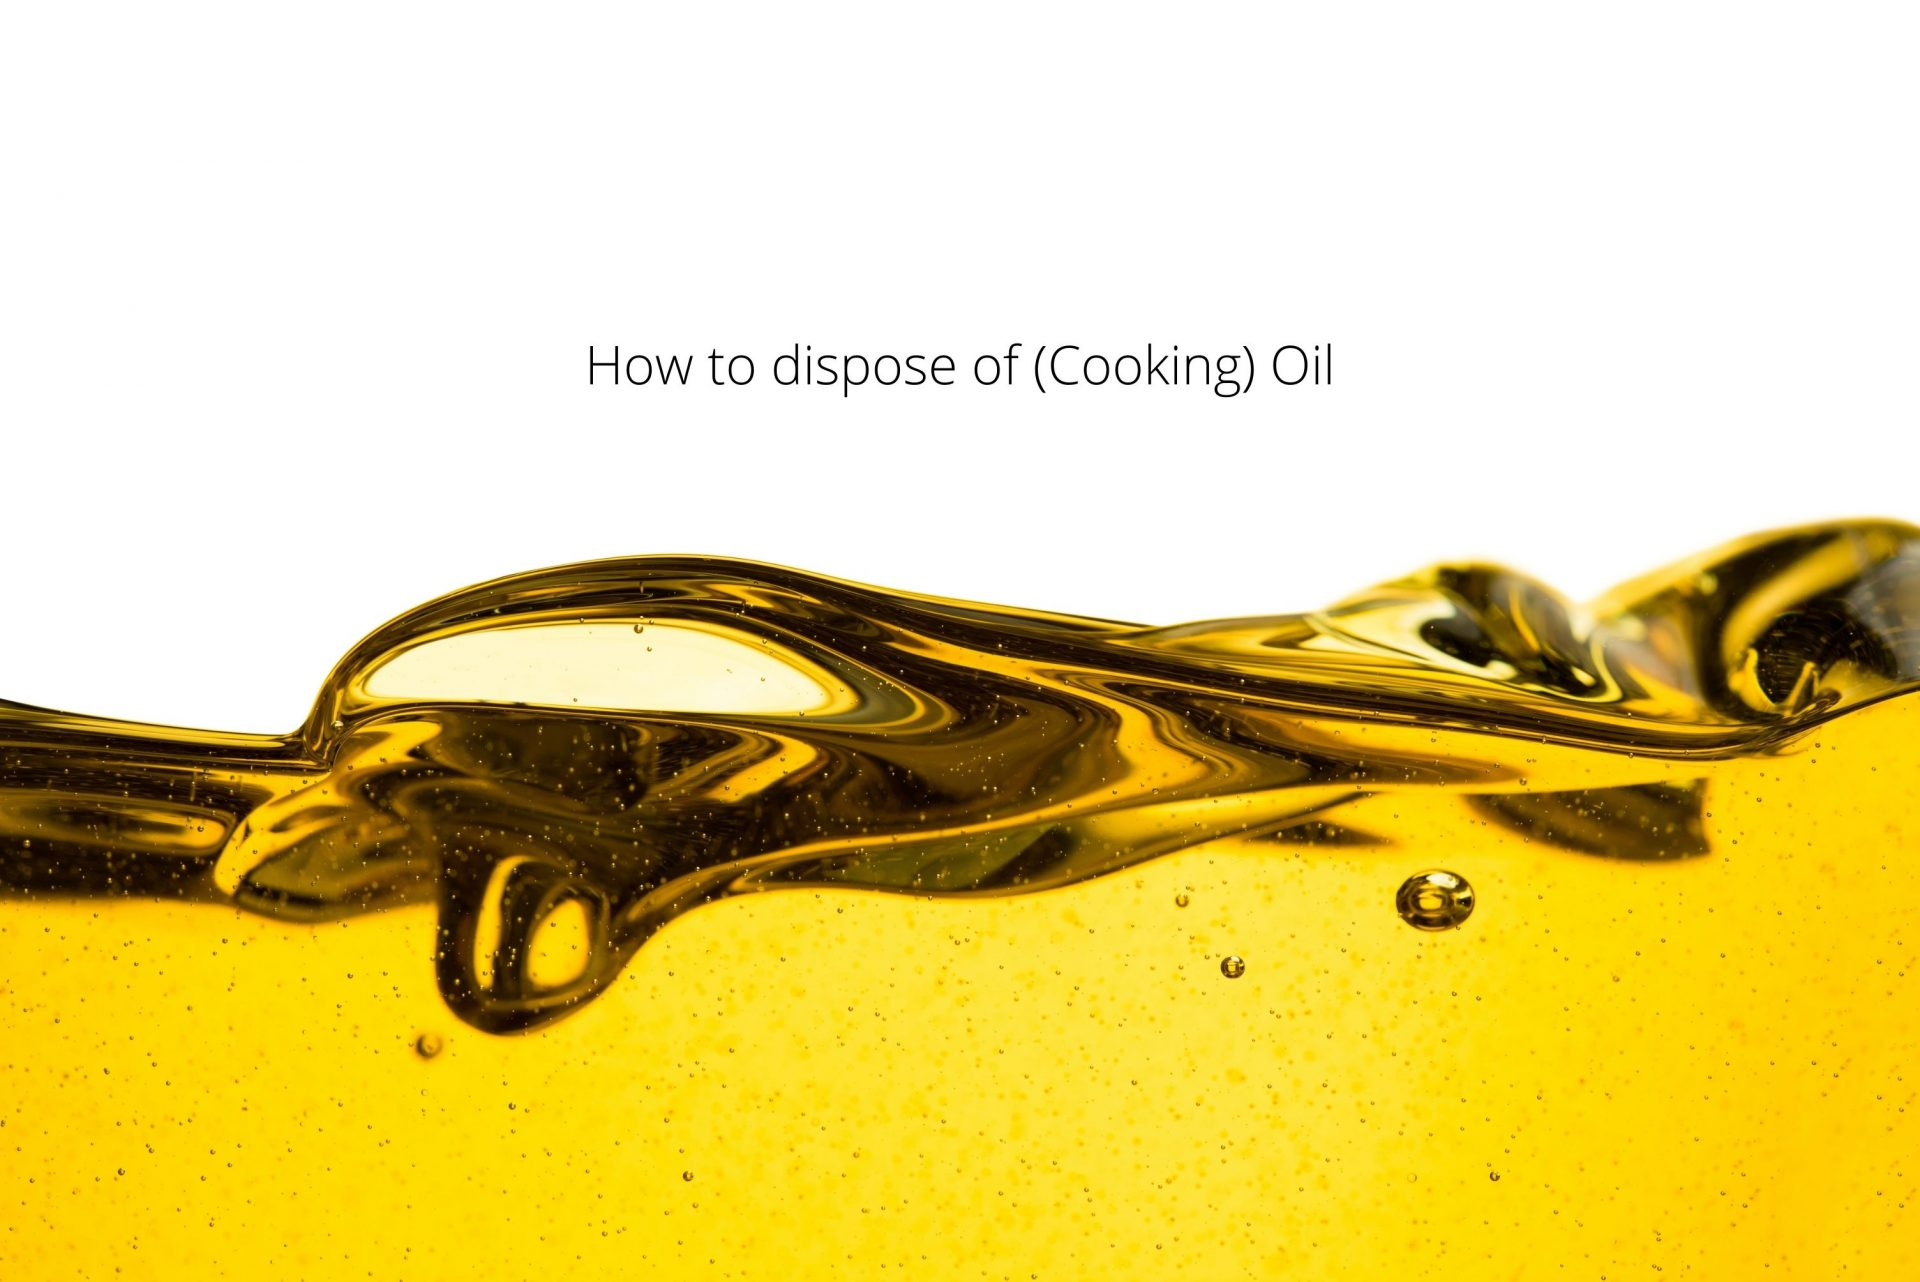 How to dispose of (Cooking) Oil